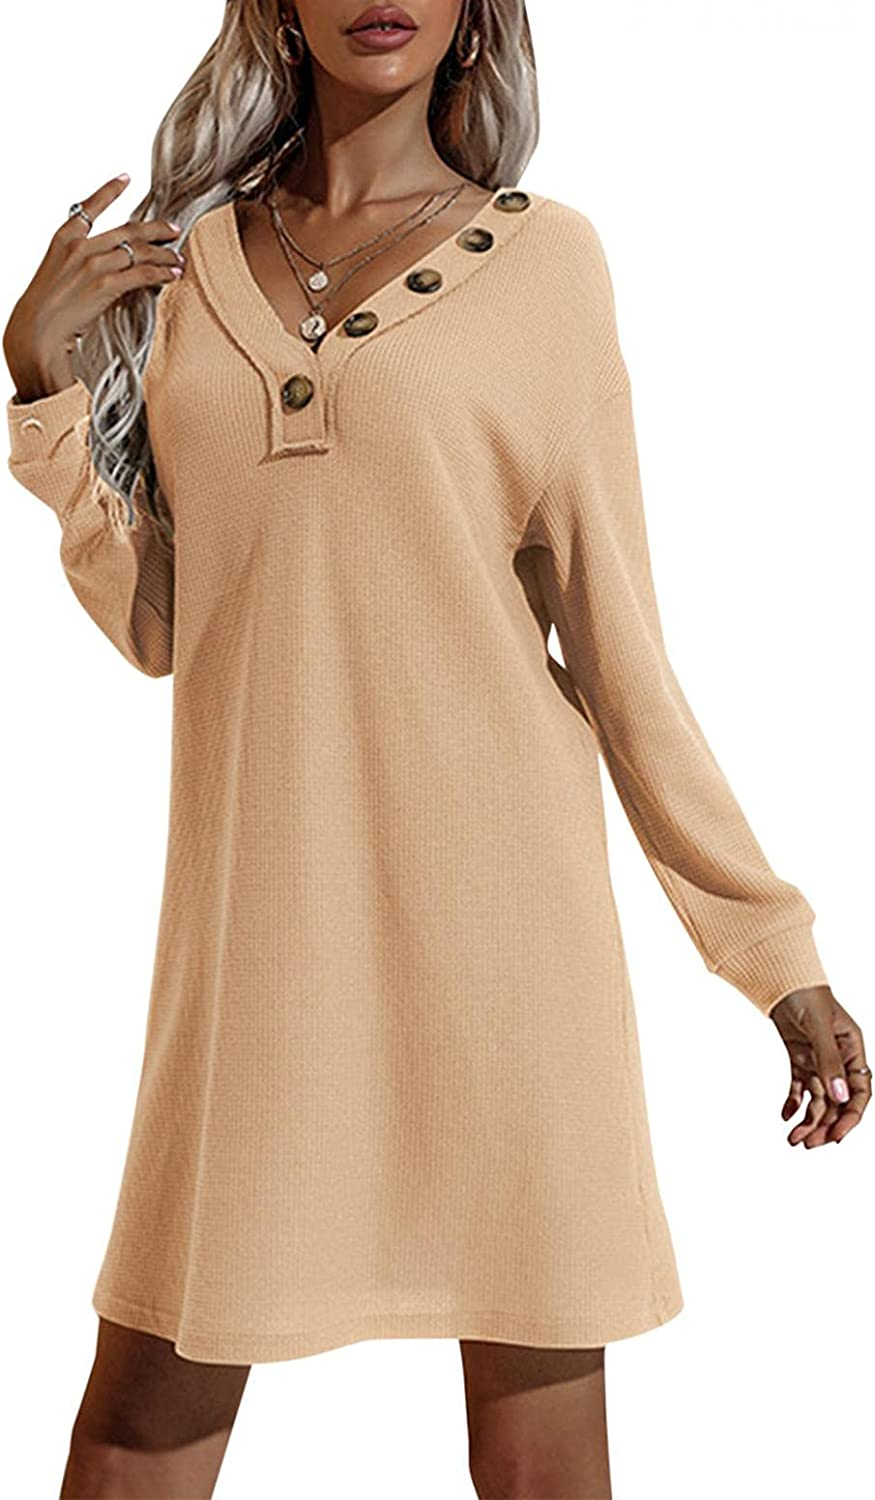 xoxing Womens Dresses Casual Plus Size Long Sleeve Solid Color Knit Sweater Dress V Neck Mini Button Loose Tunic Dresses